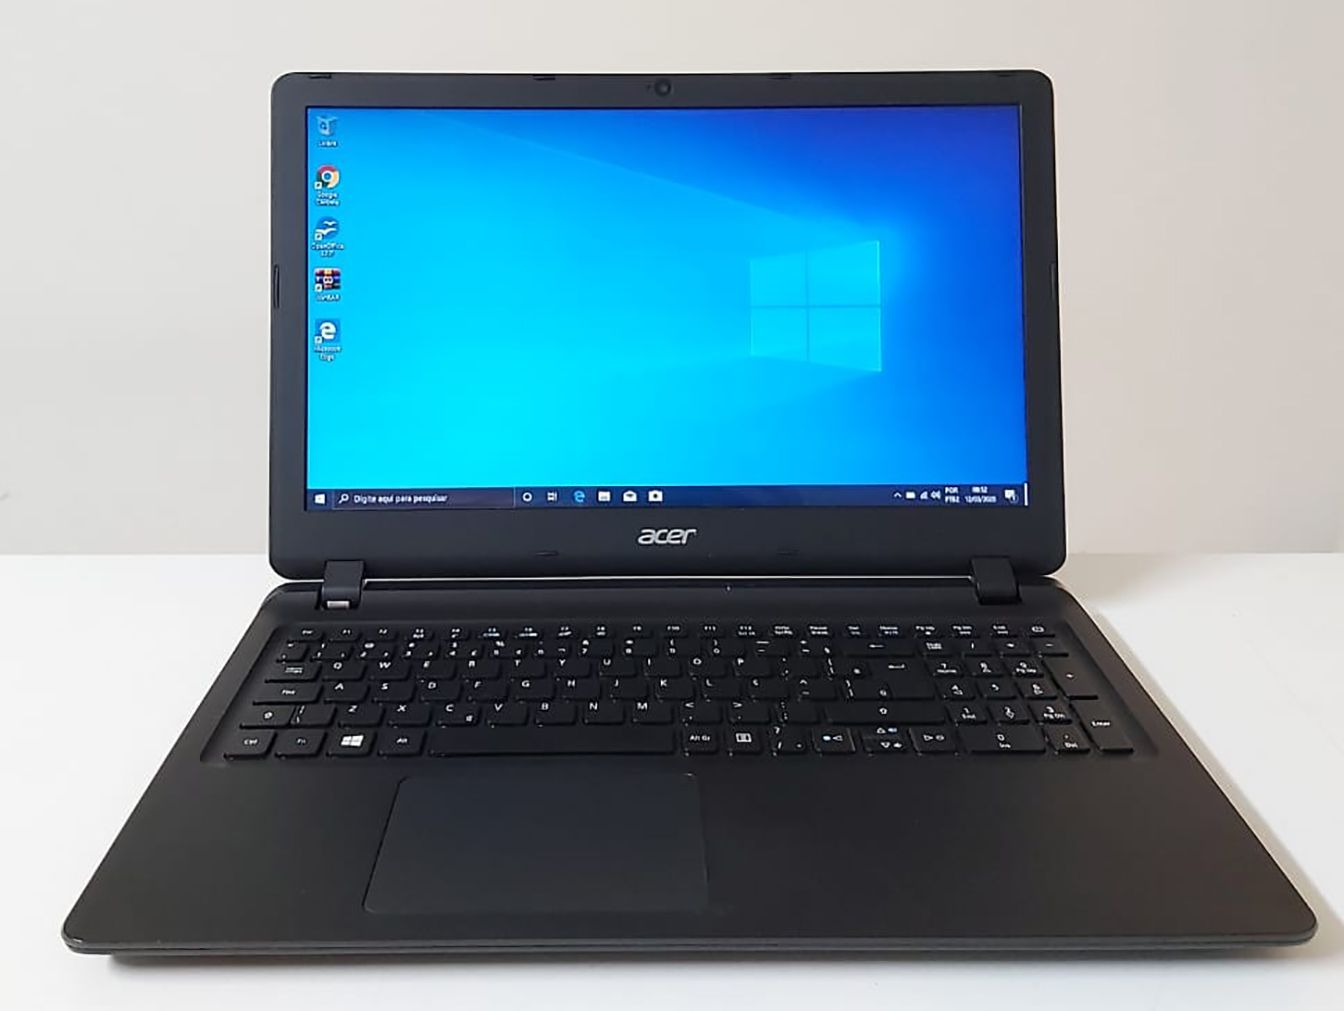 "Notebook Acer Aspire ES1-572-37PZ 15.6"" Intel Core i3 2.4GHz 4GB HD-500GB + Alphanumérico"